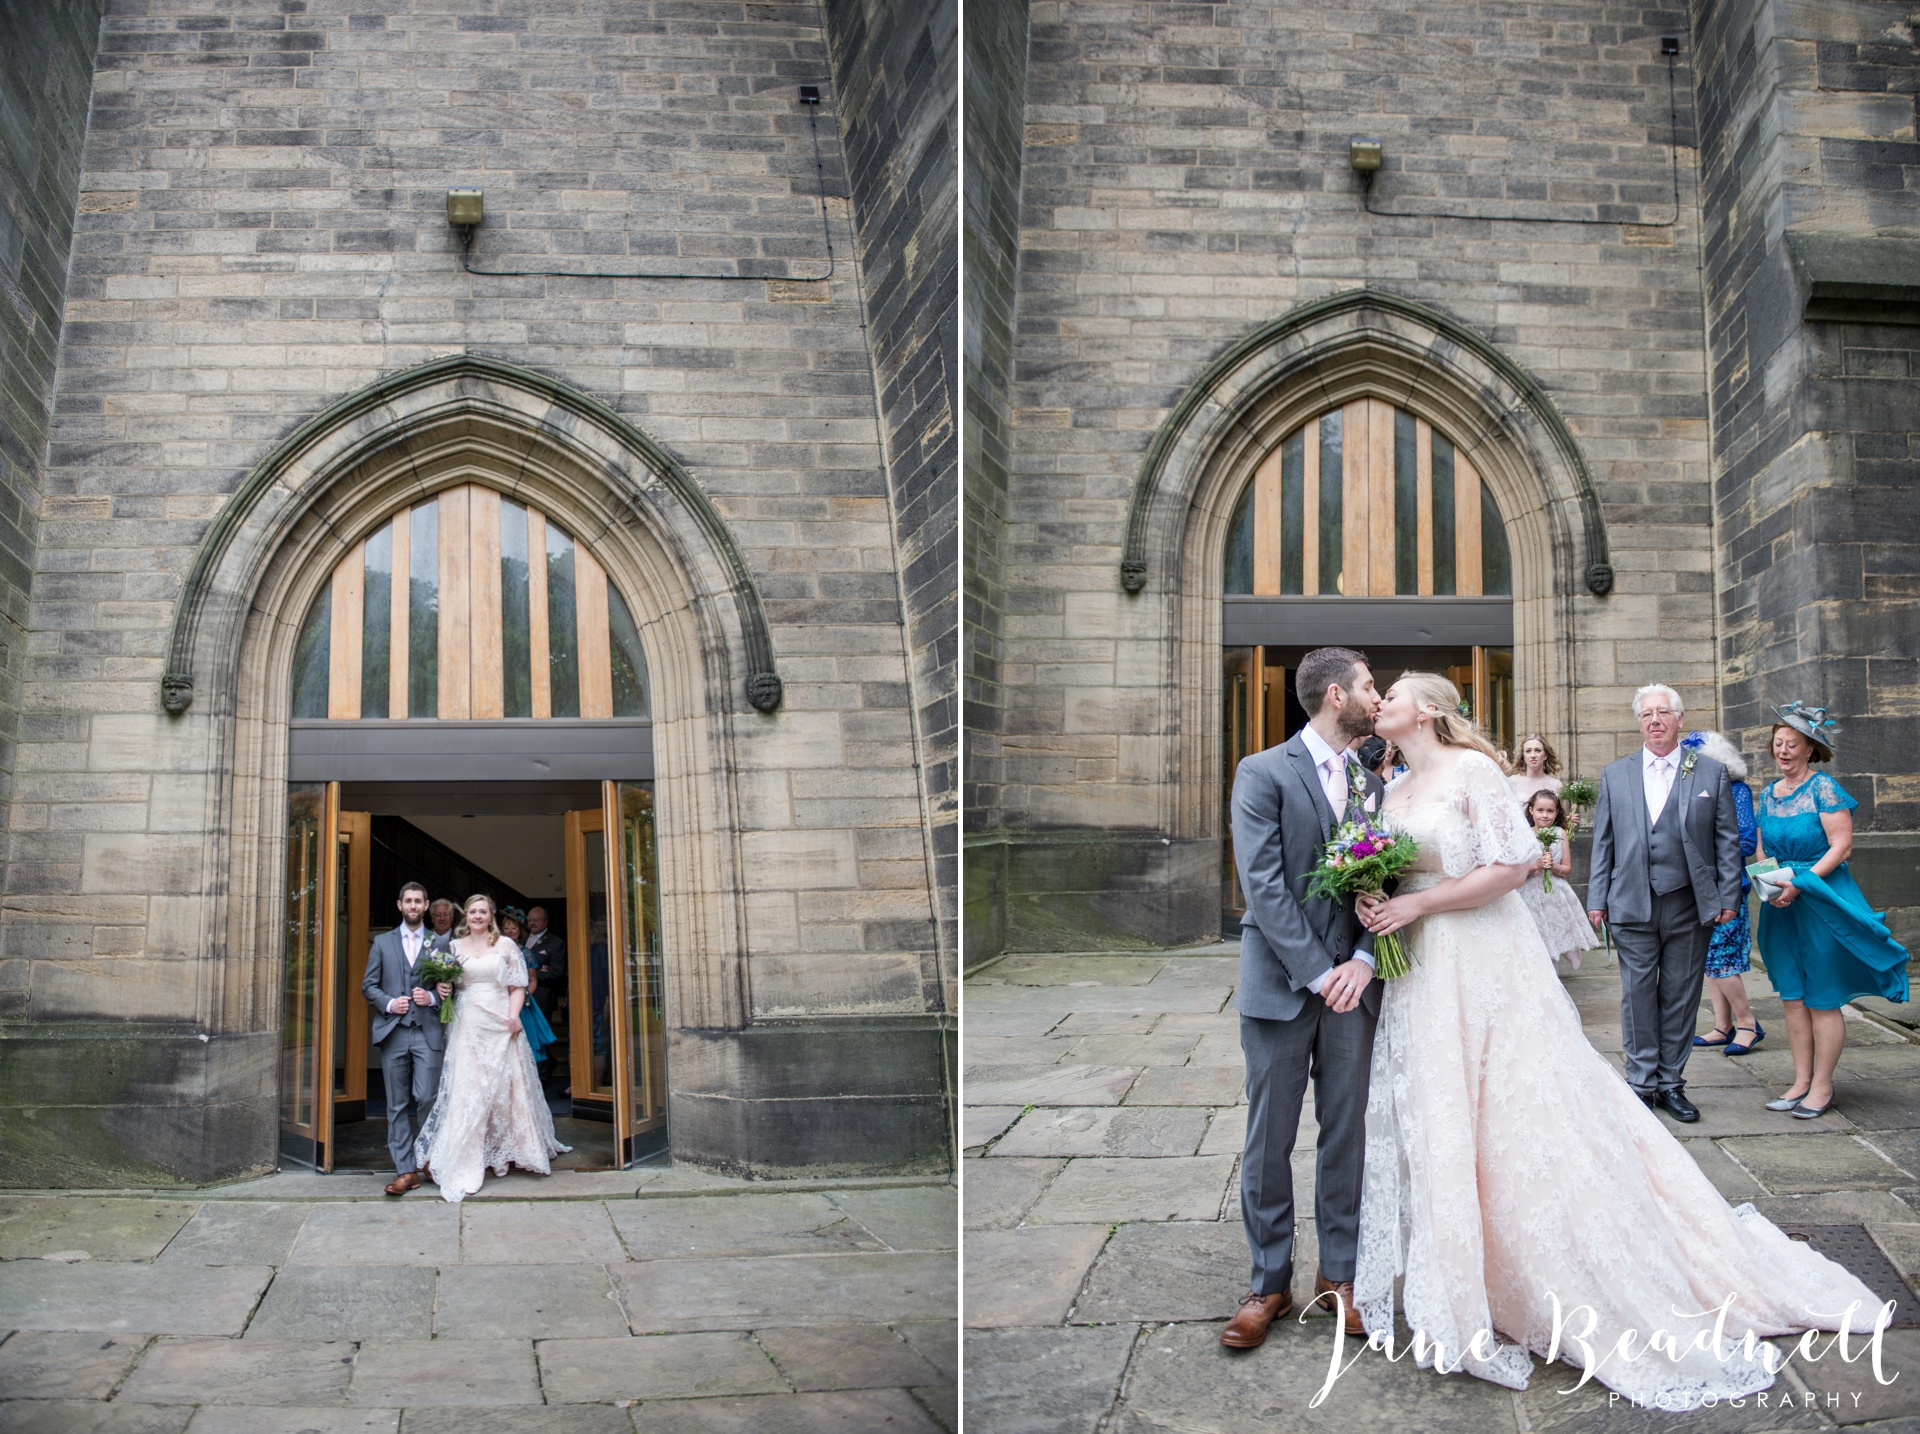 Yorkshire Wedding Photography the cheerful Chilli Barn Wedding by Jane Beadnell Photography_0079